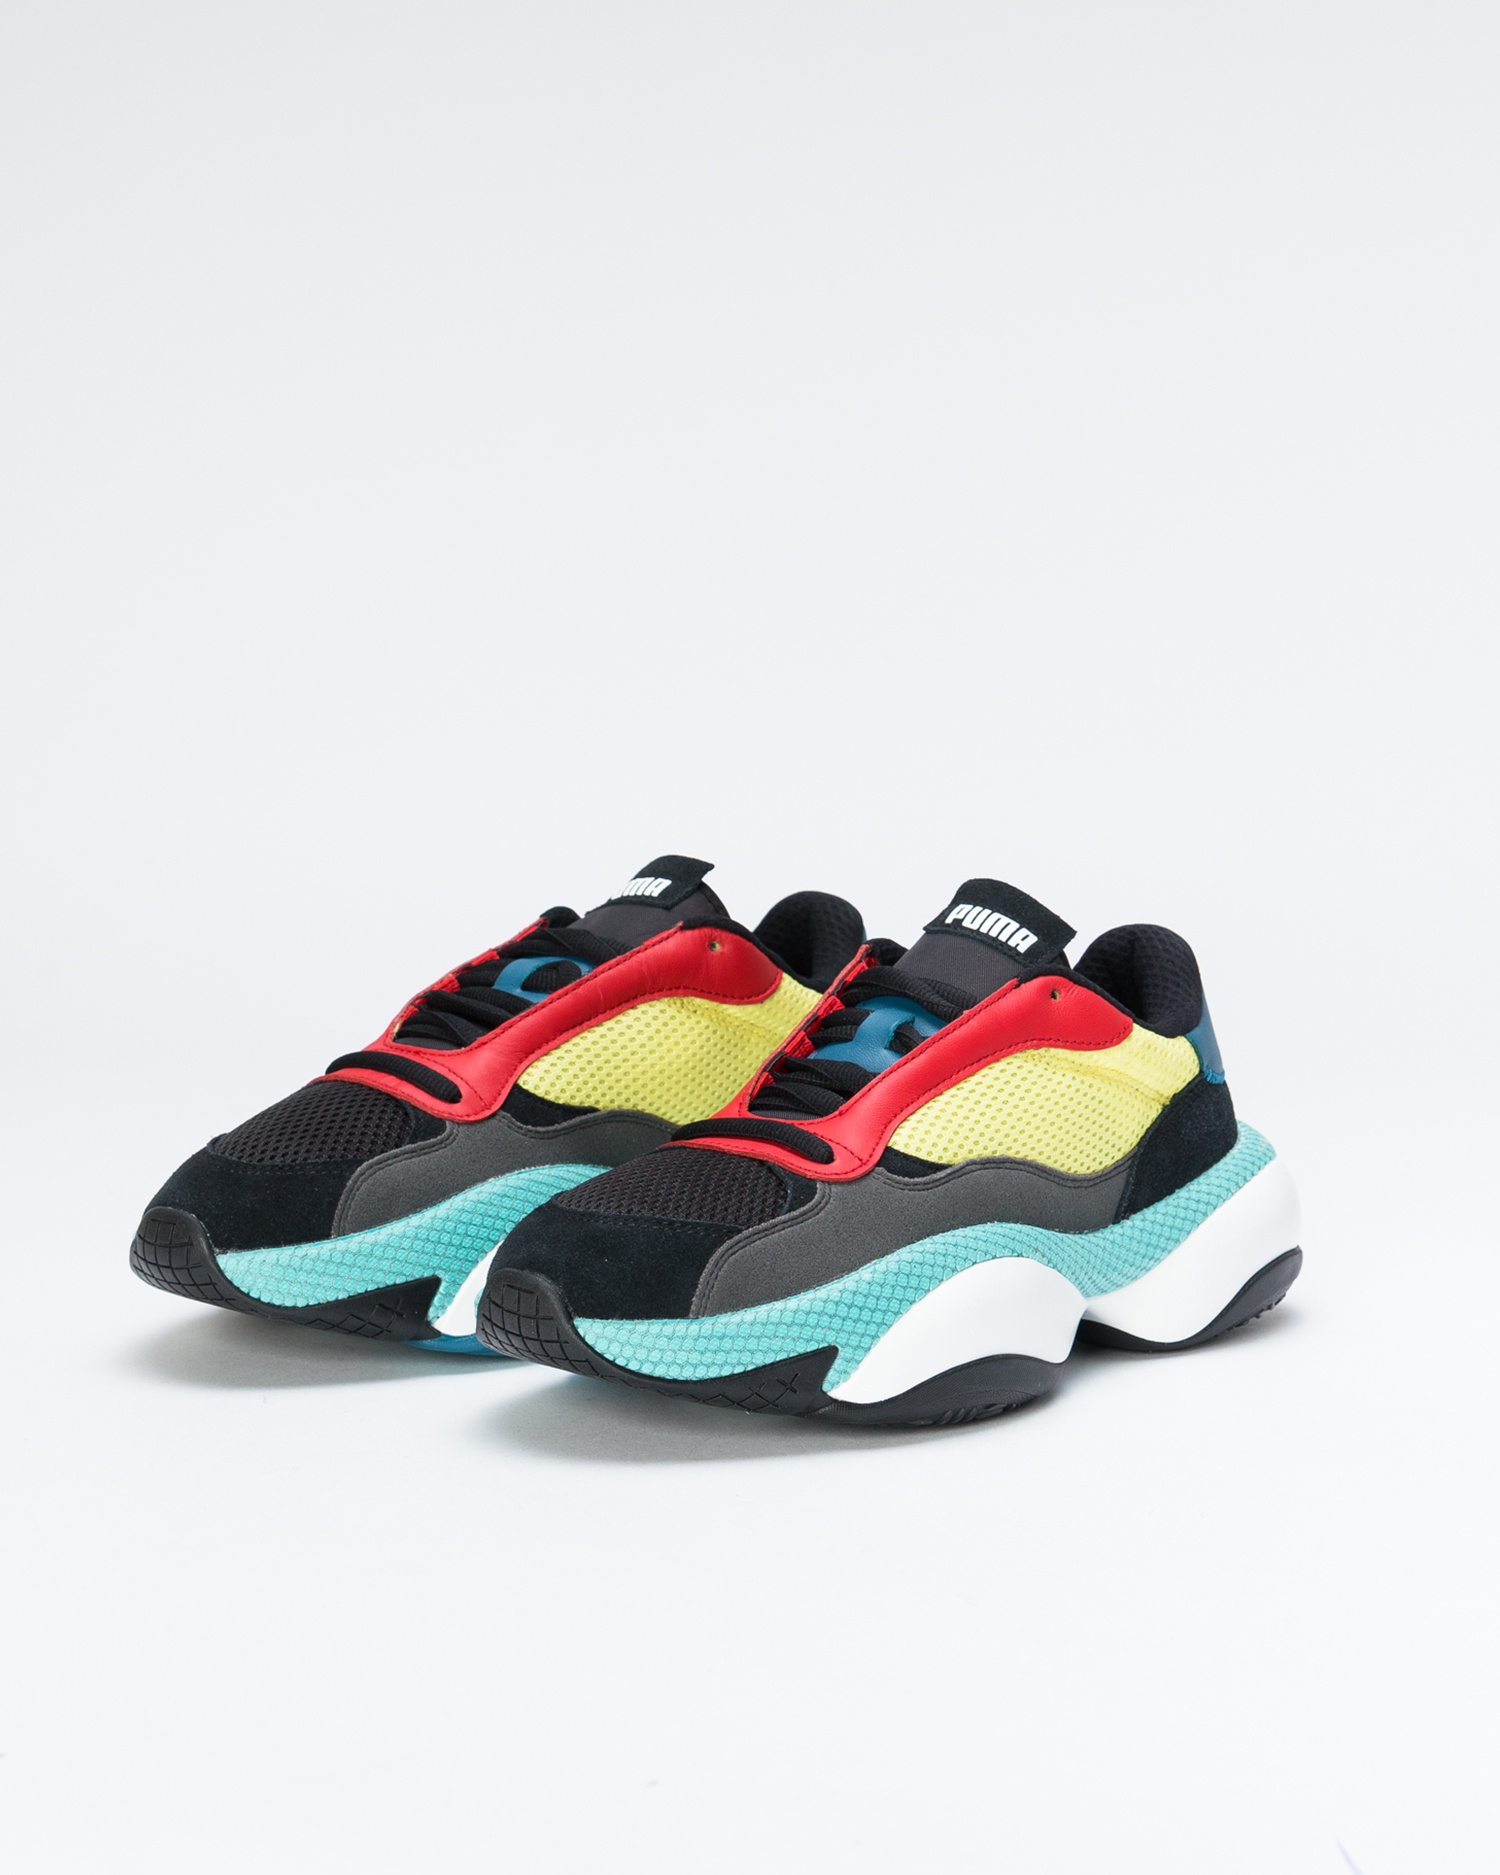 Puma Alteration Kurve Black/Limelight